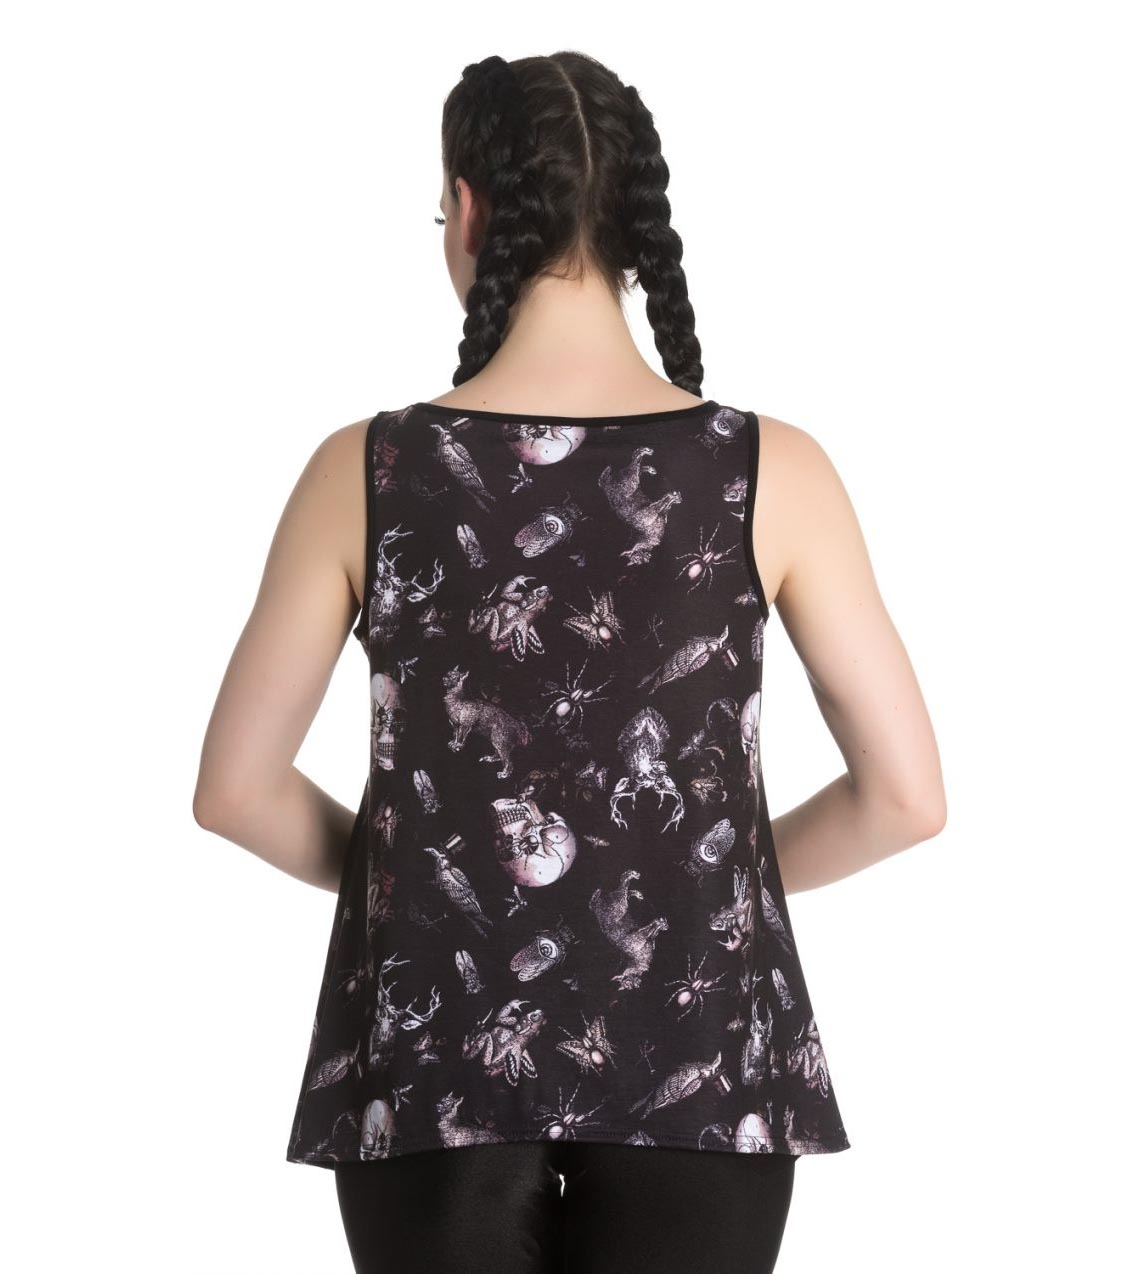 Hell-Bunny-Black-Vest-Cami-Top-Goth-Witch-DARWIN-Taxidermy-Skulls-All-Sizes thumbnail 5